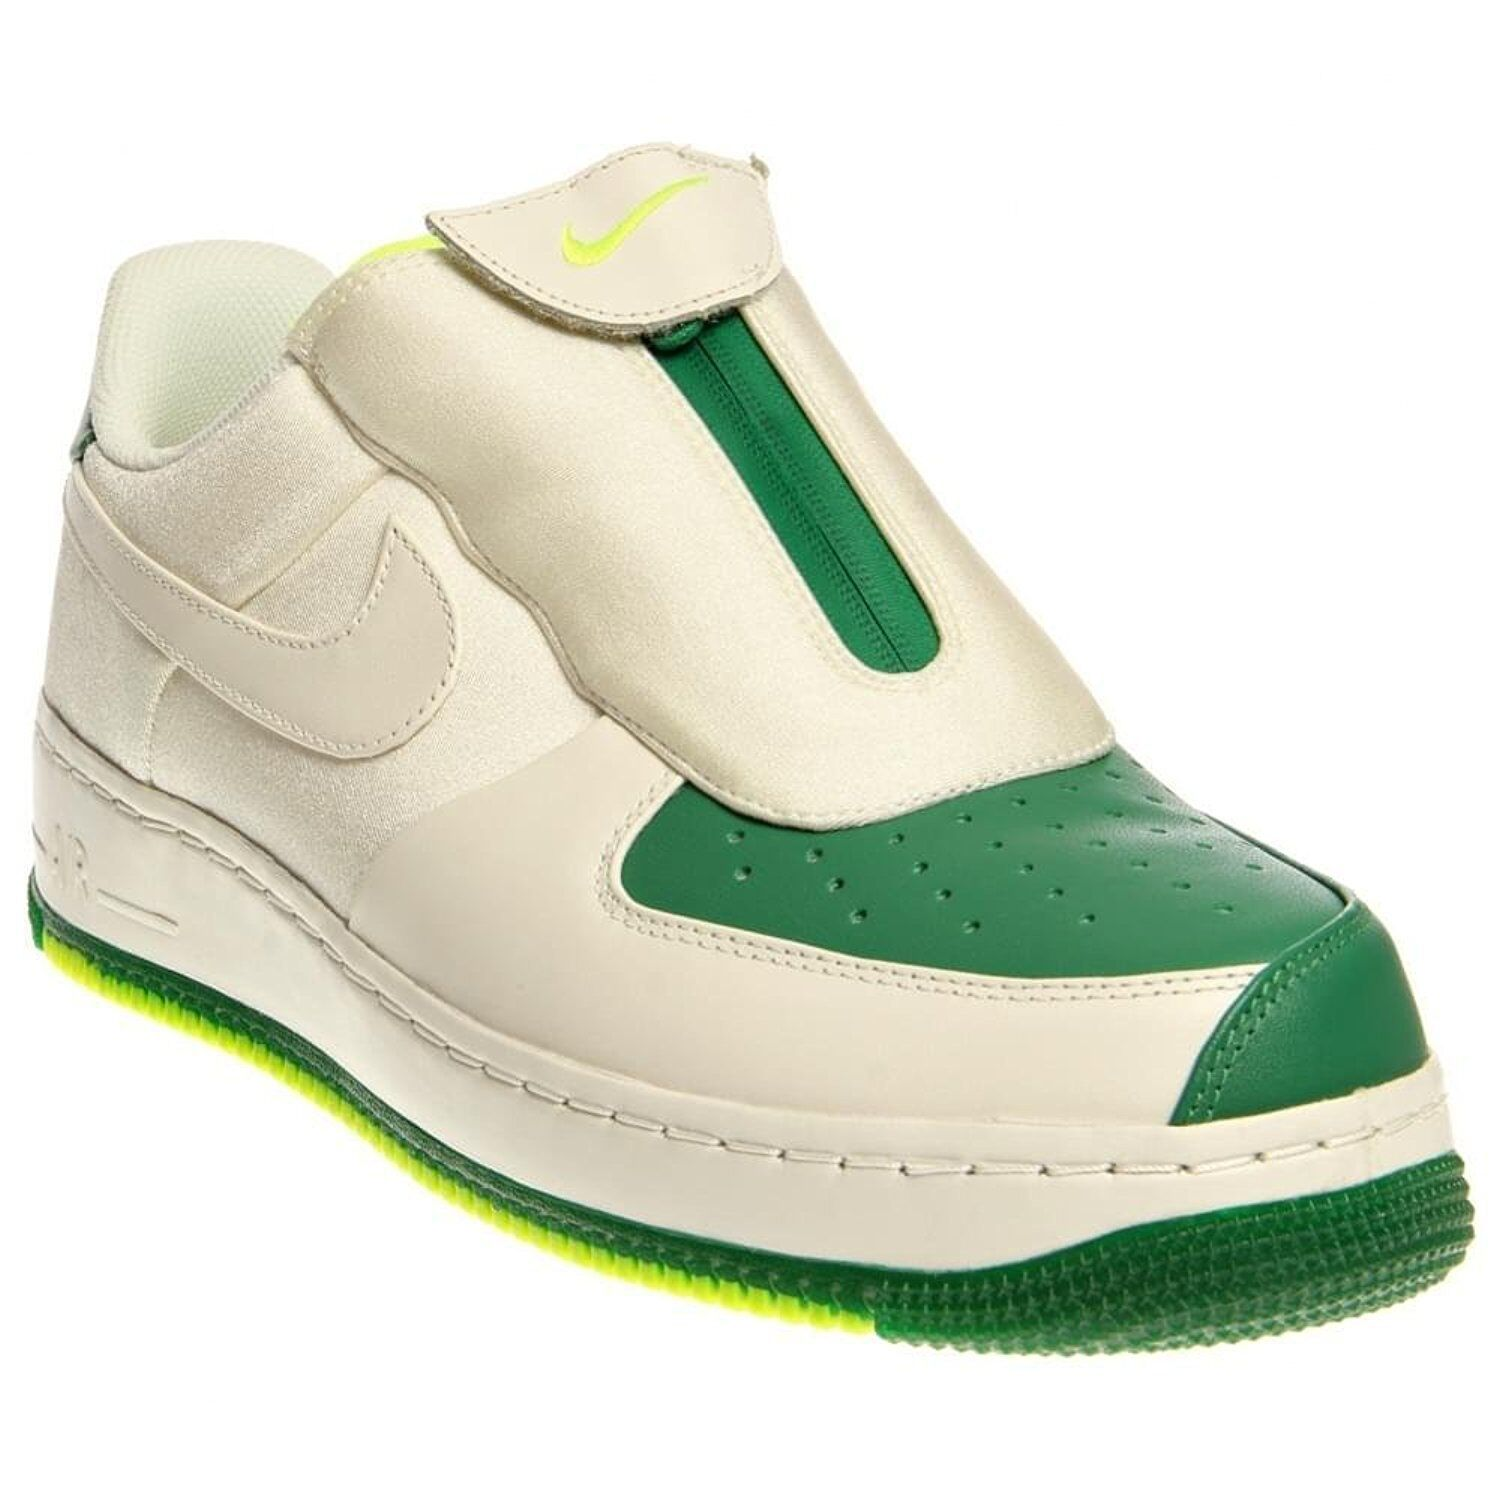 Comfortable and good-looking Nike Air Force 1 Low Cmft LW GP SIG Mens Shoe Price reduction